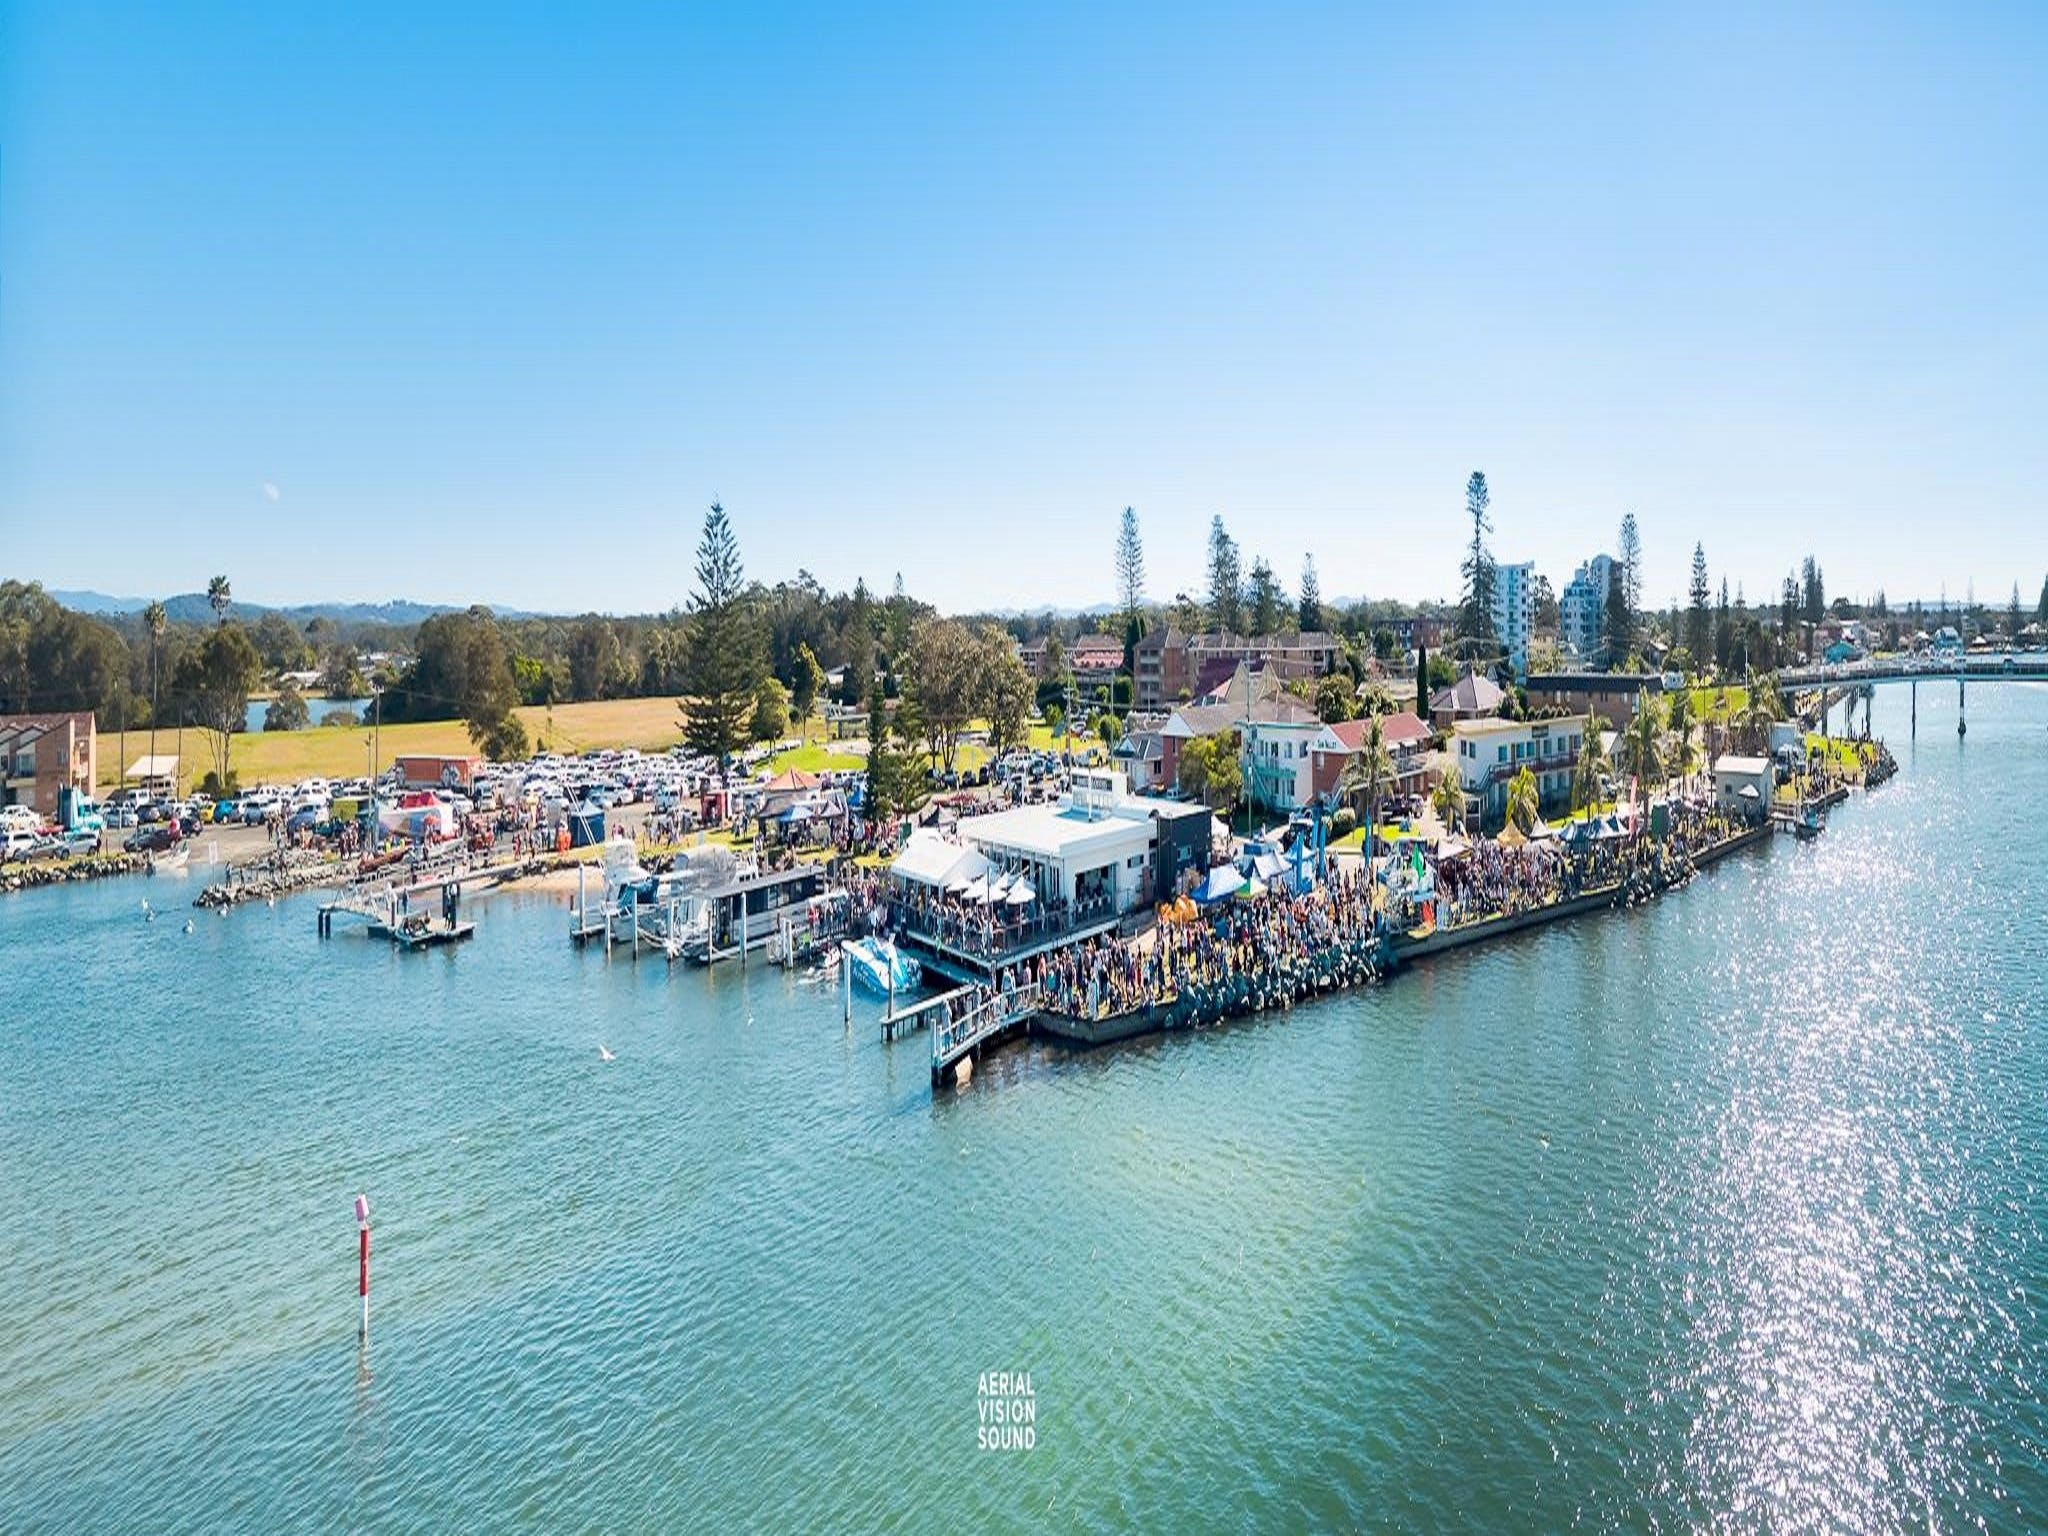 Fred Williams Aquatic Festival - Lennox Head Accommodation